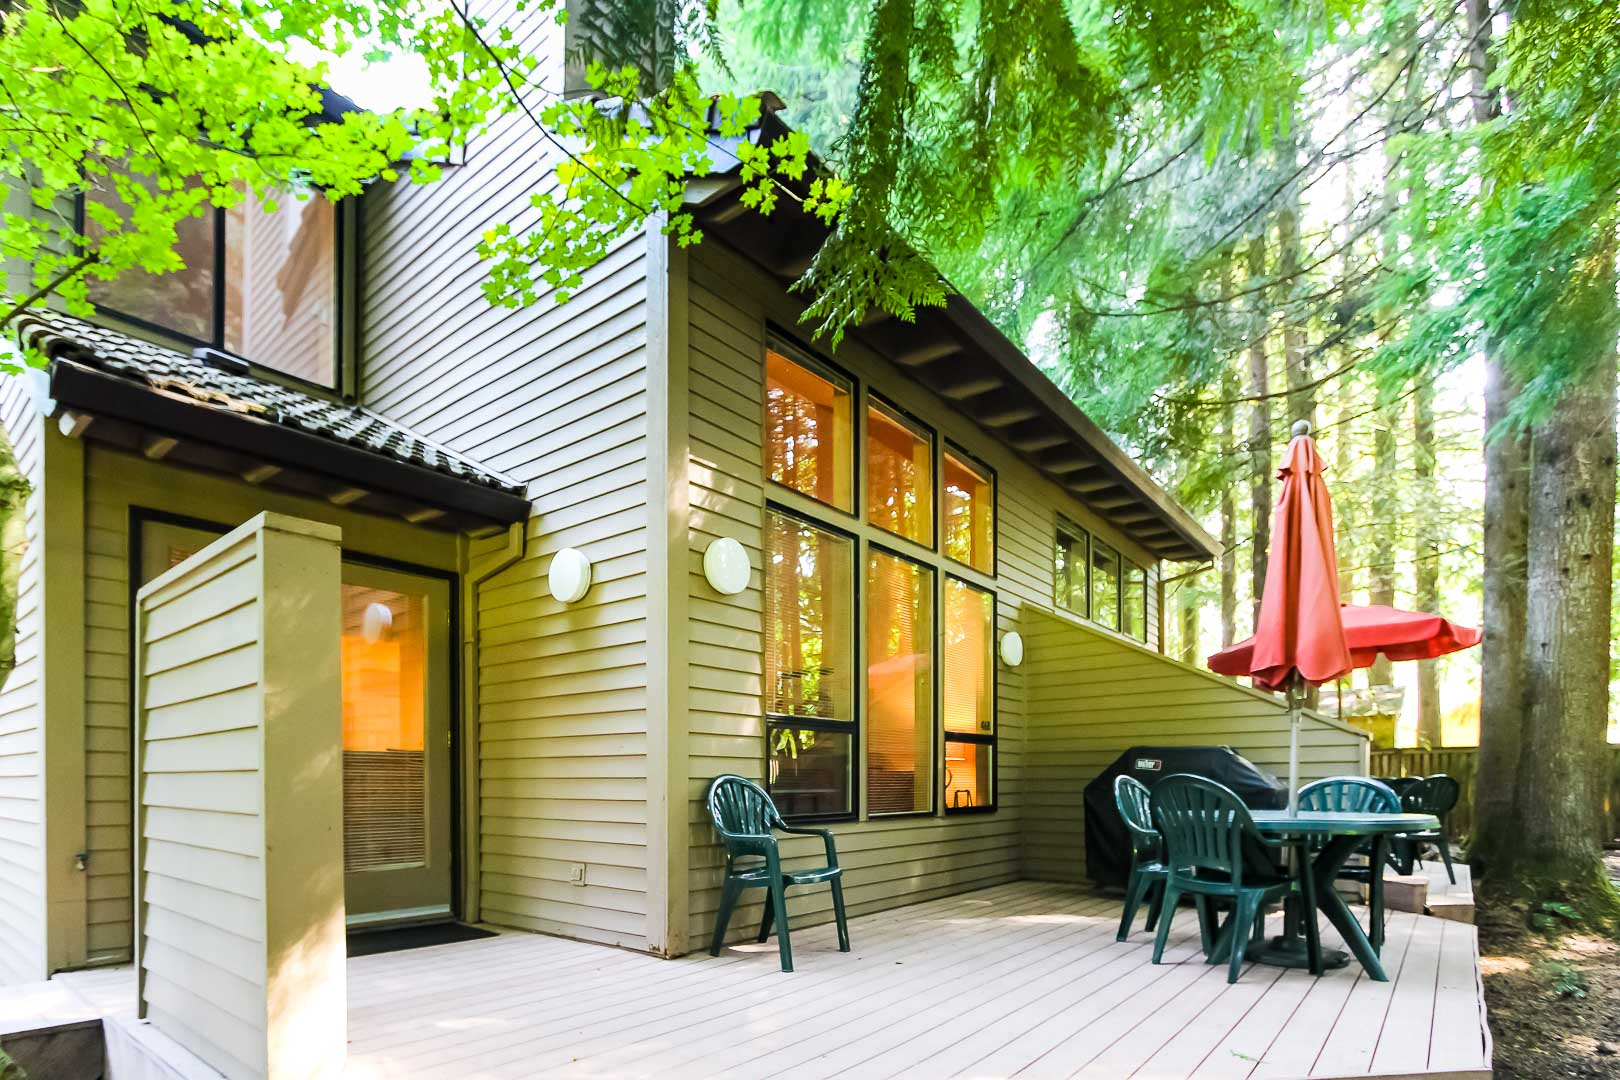 A view of the accommodations at VRI's Whispering Woods Resort in Oregon.